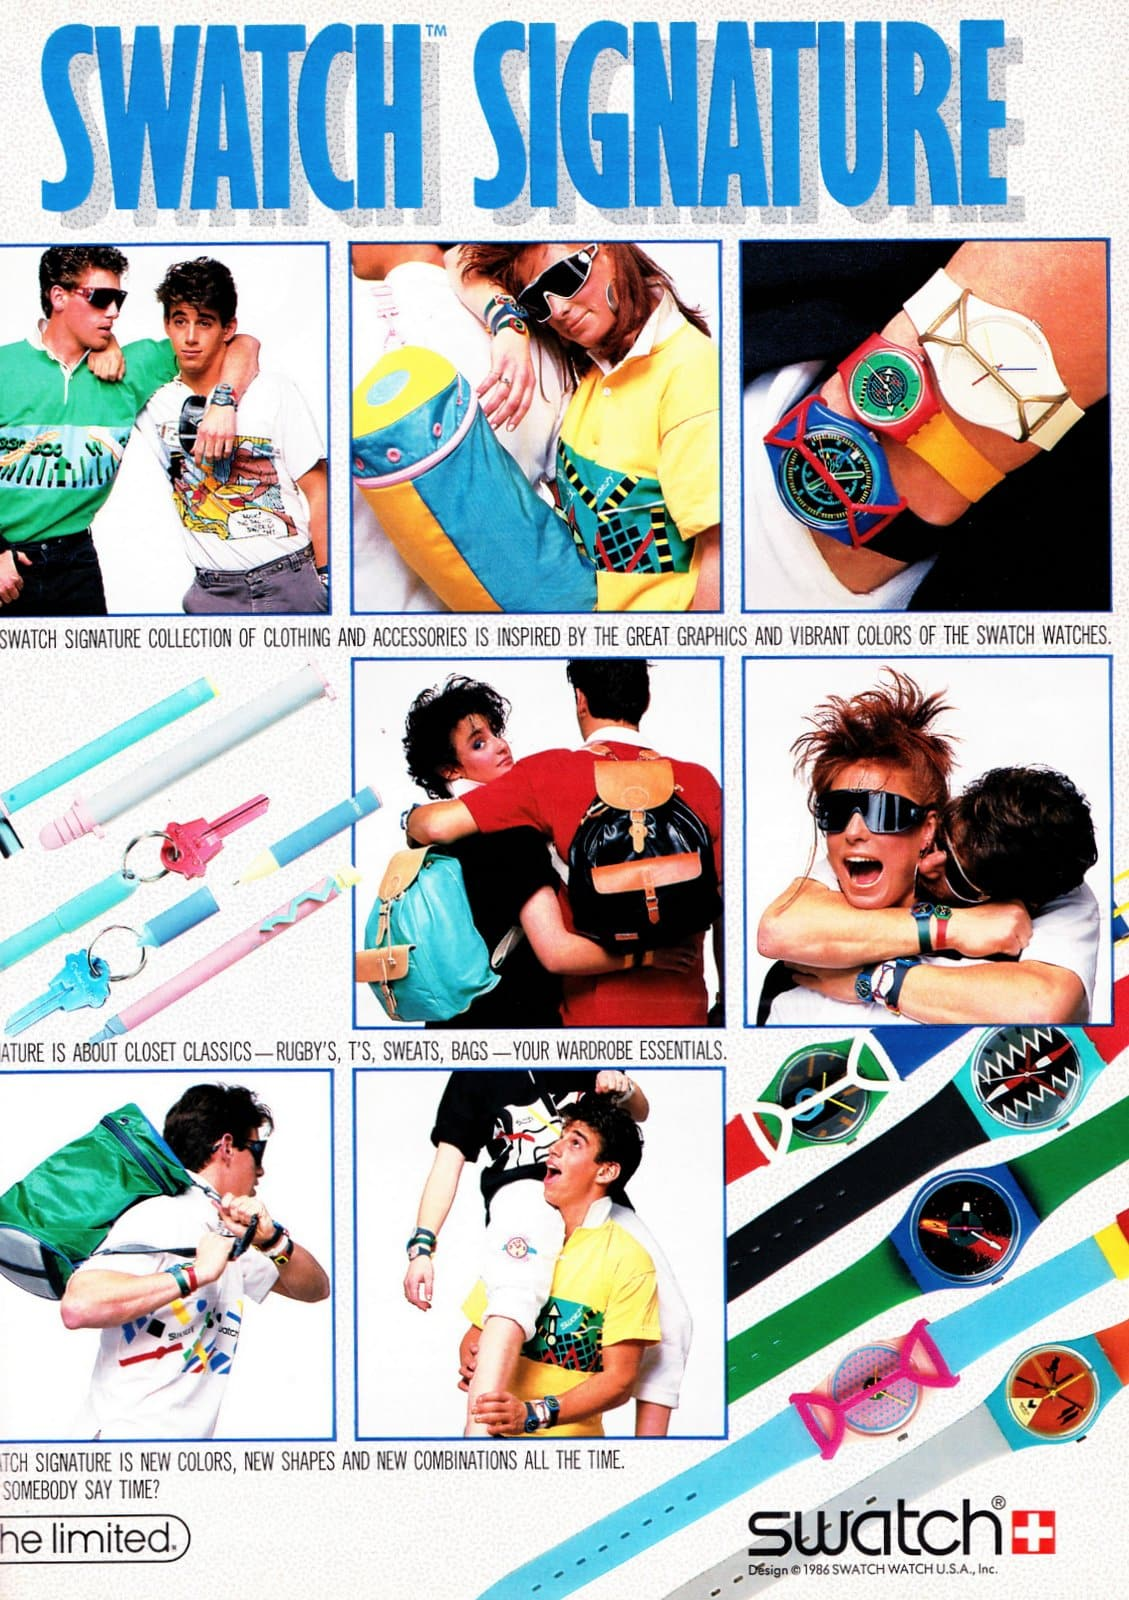 Vintage Swatch designs from 1986